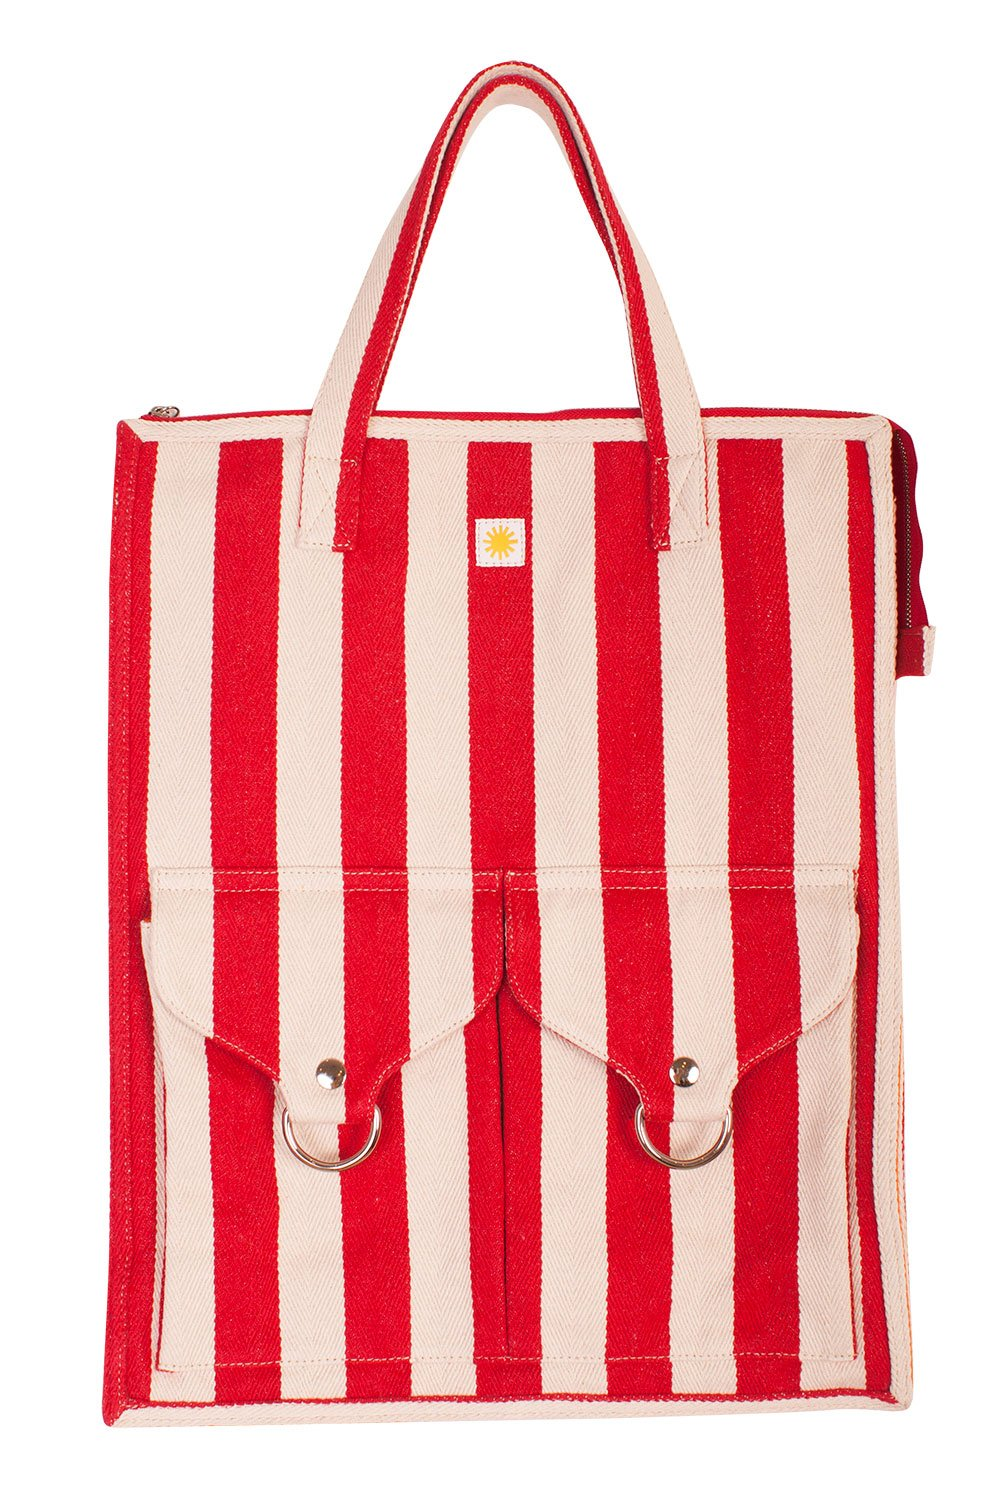 LF MARKEY STRIPED BEACH BAG - Last one!